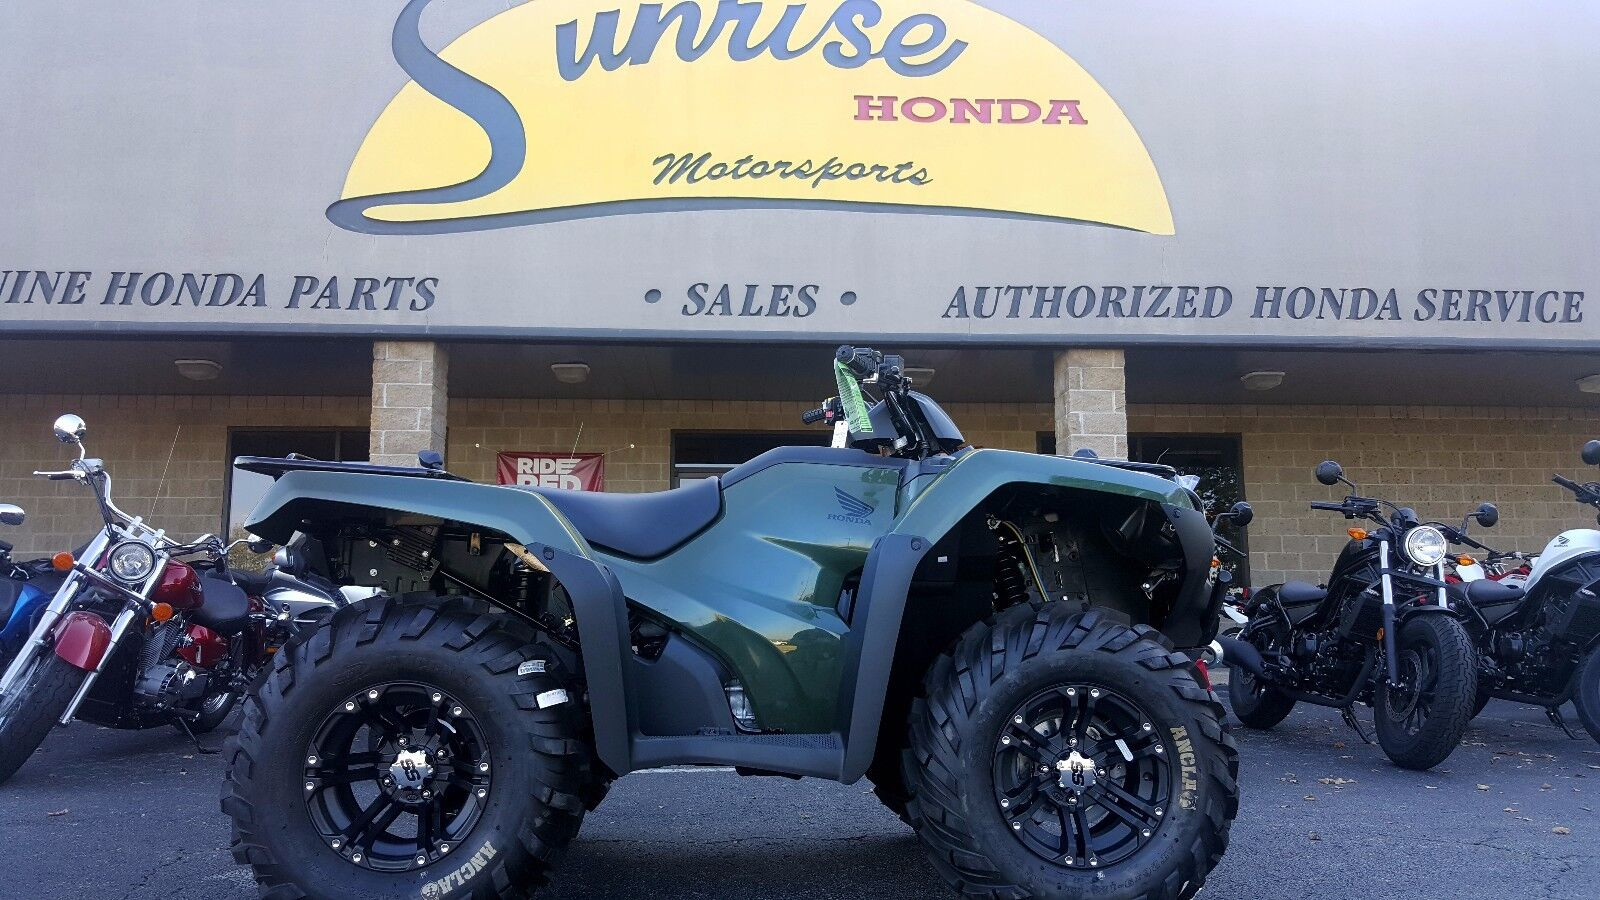 NEW 2017 Honda Rancher 4x4 foot shift GREEN with Winch and Mud Tires